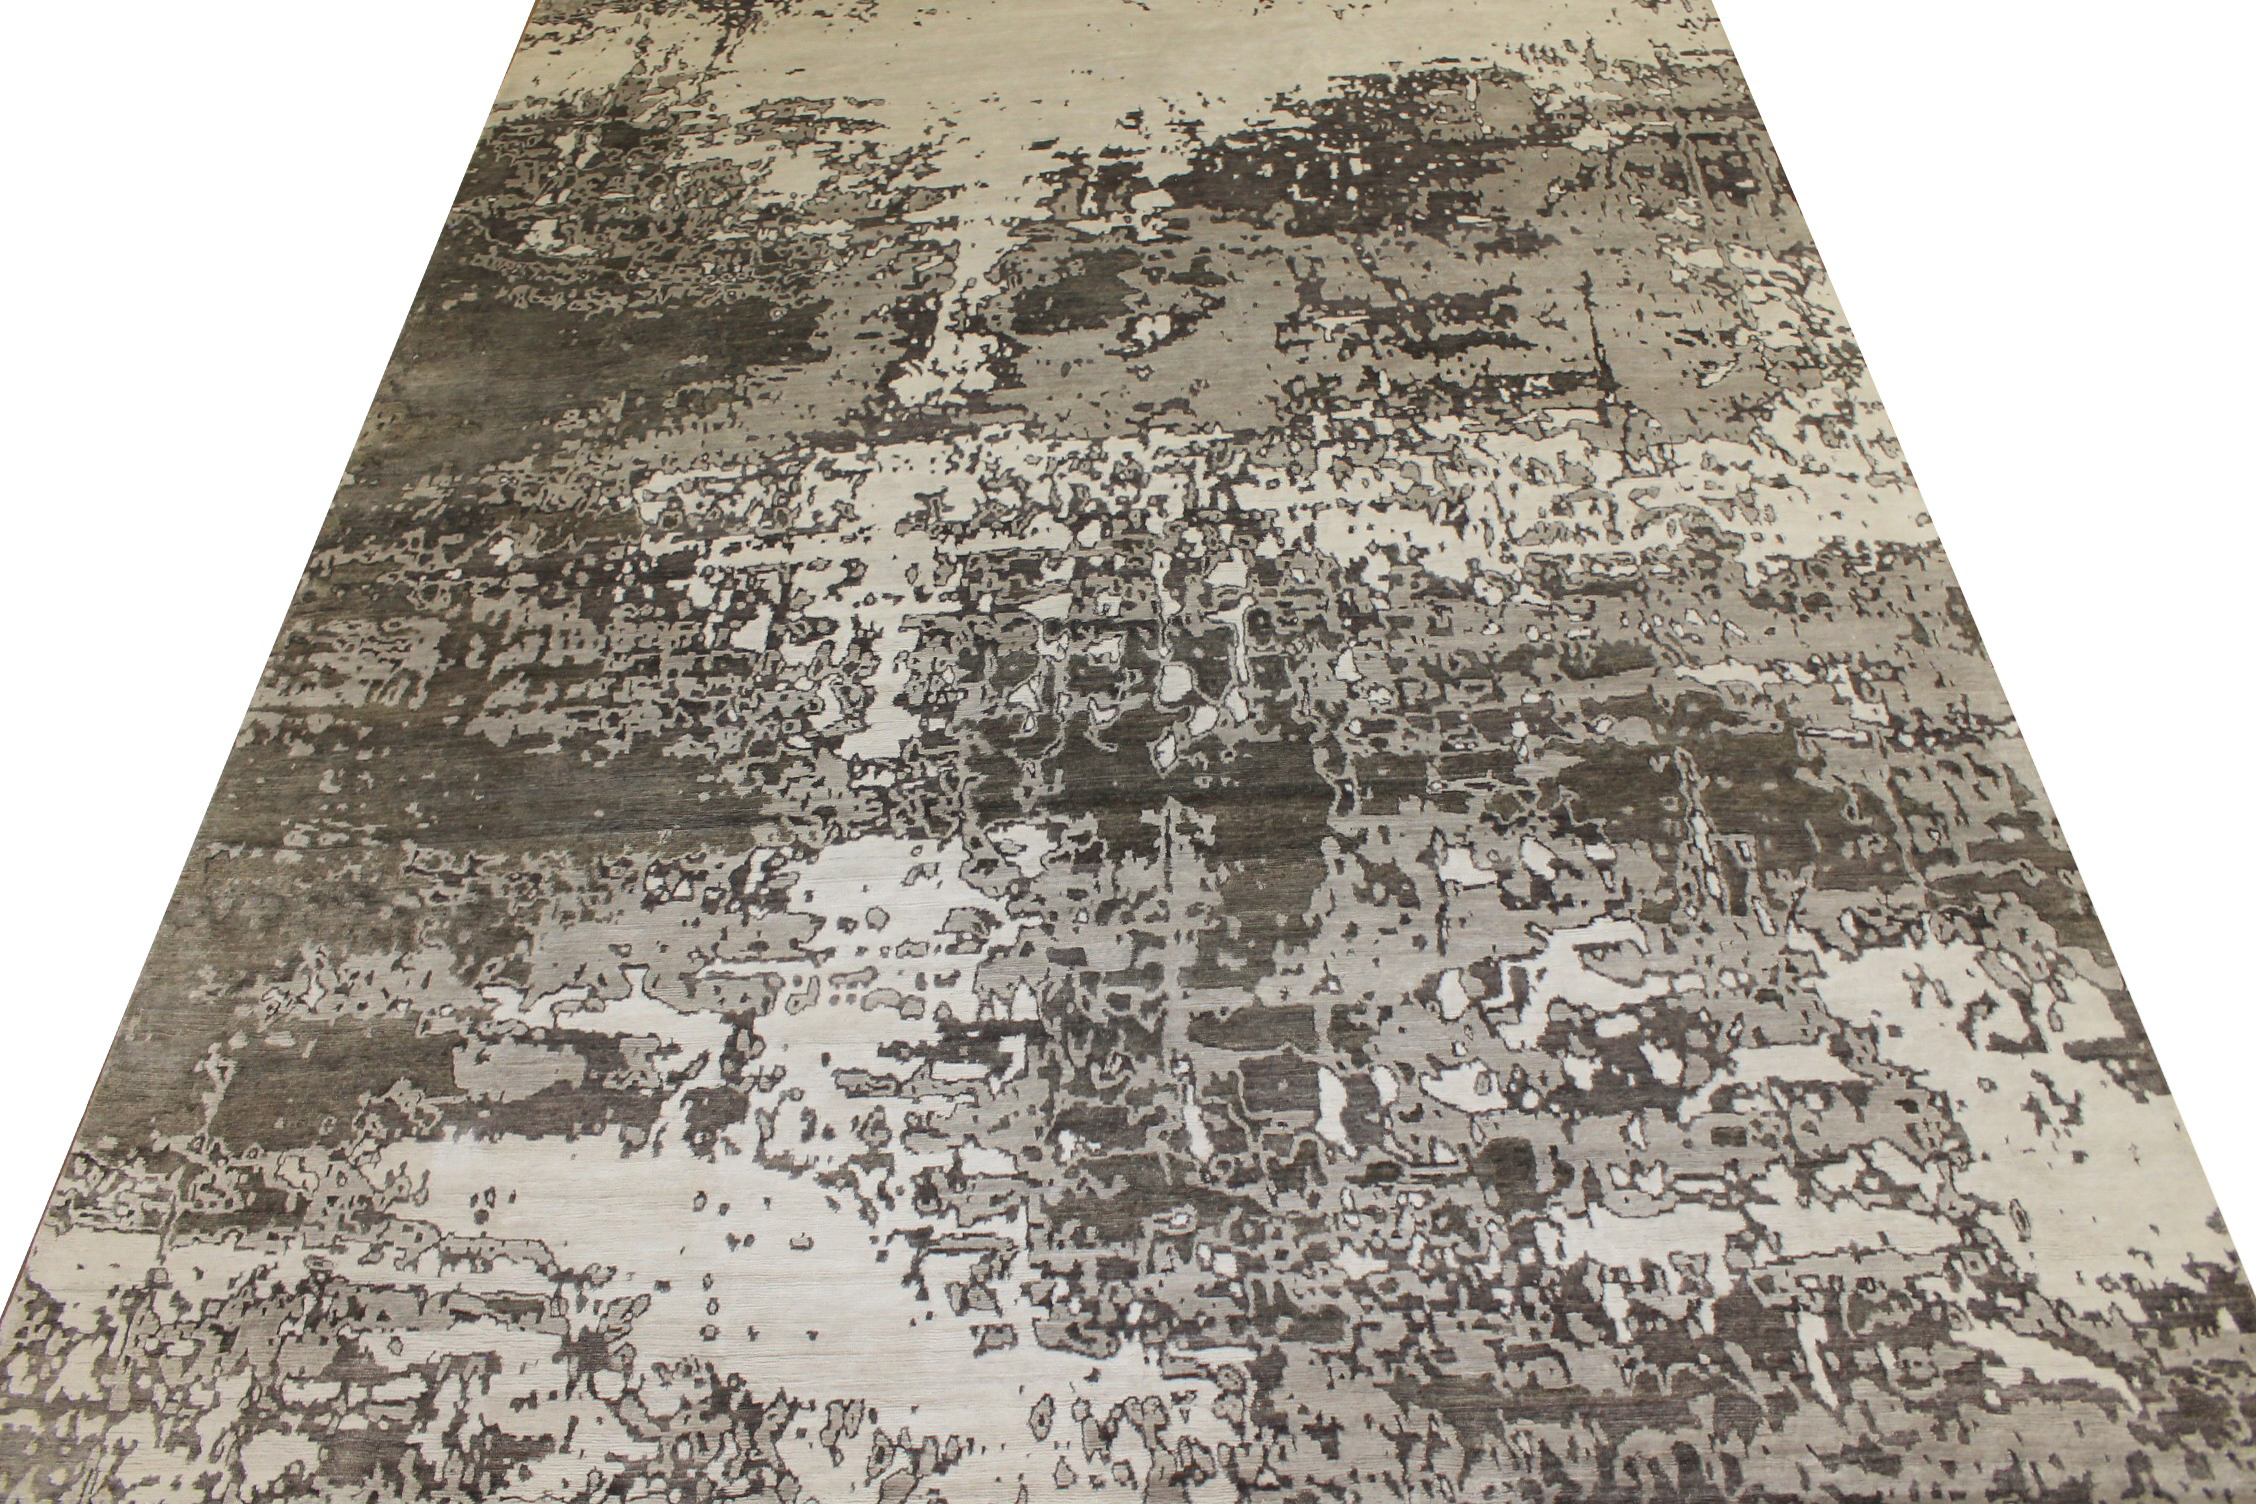 10x14 Modern Hand Knotted Wool & Bamboo Silk Area Rug - MR024647